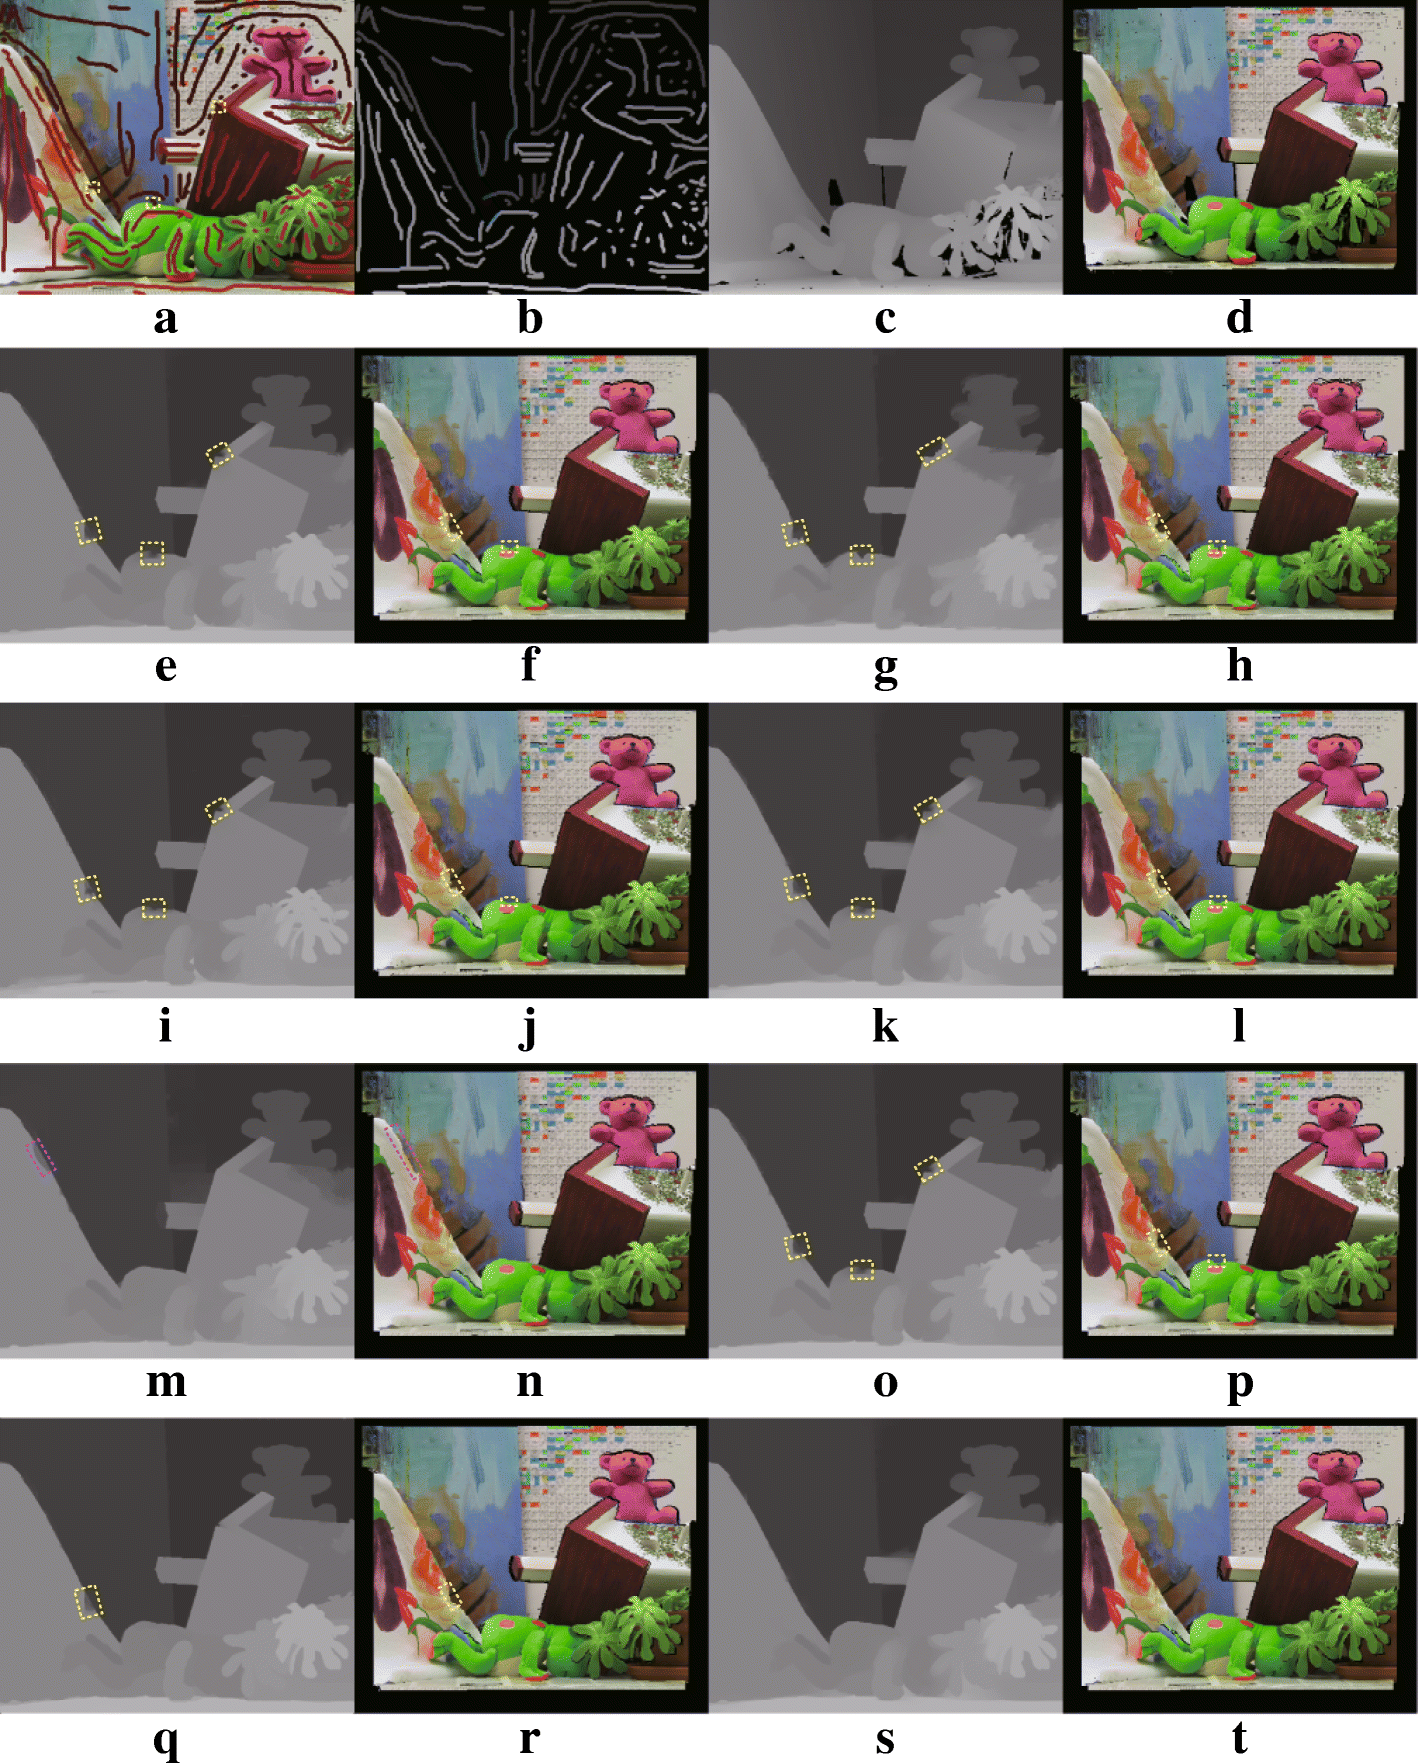 Robust semi-automatic 2D-to-3D image conversion via residual-driven